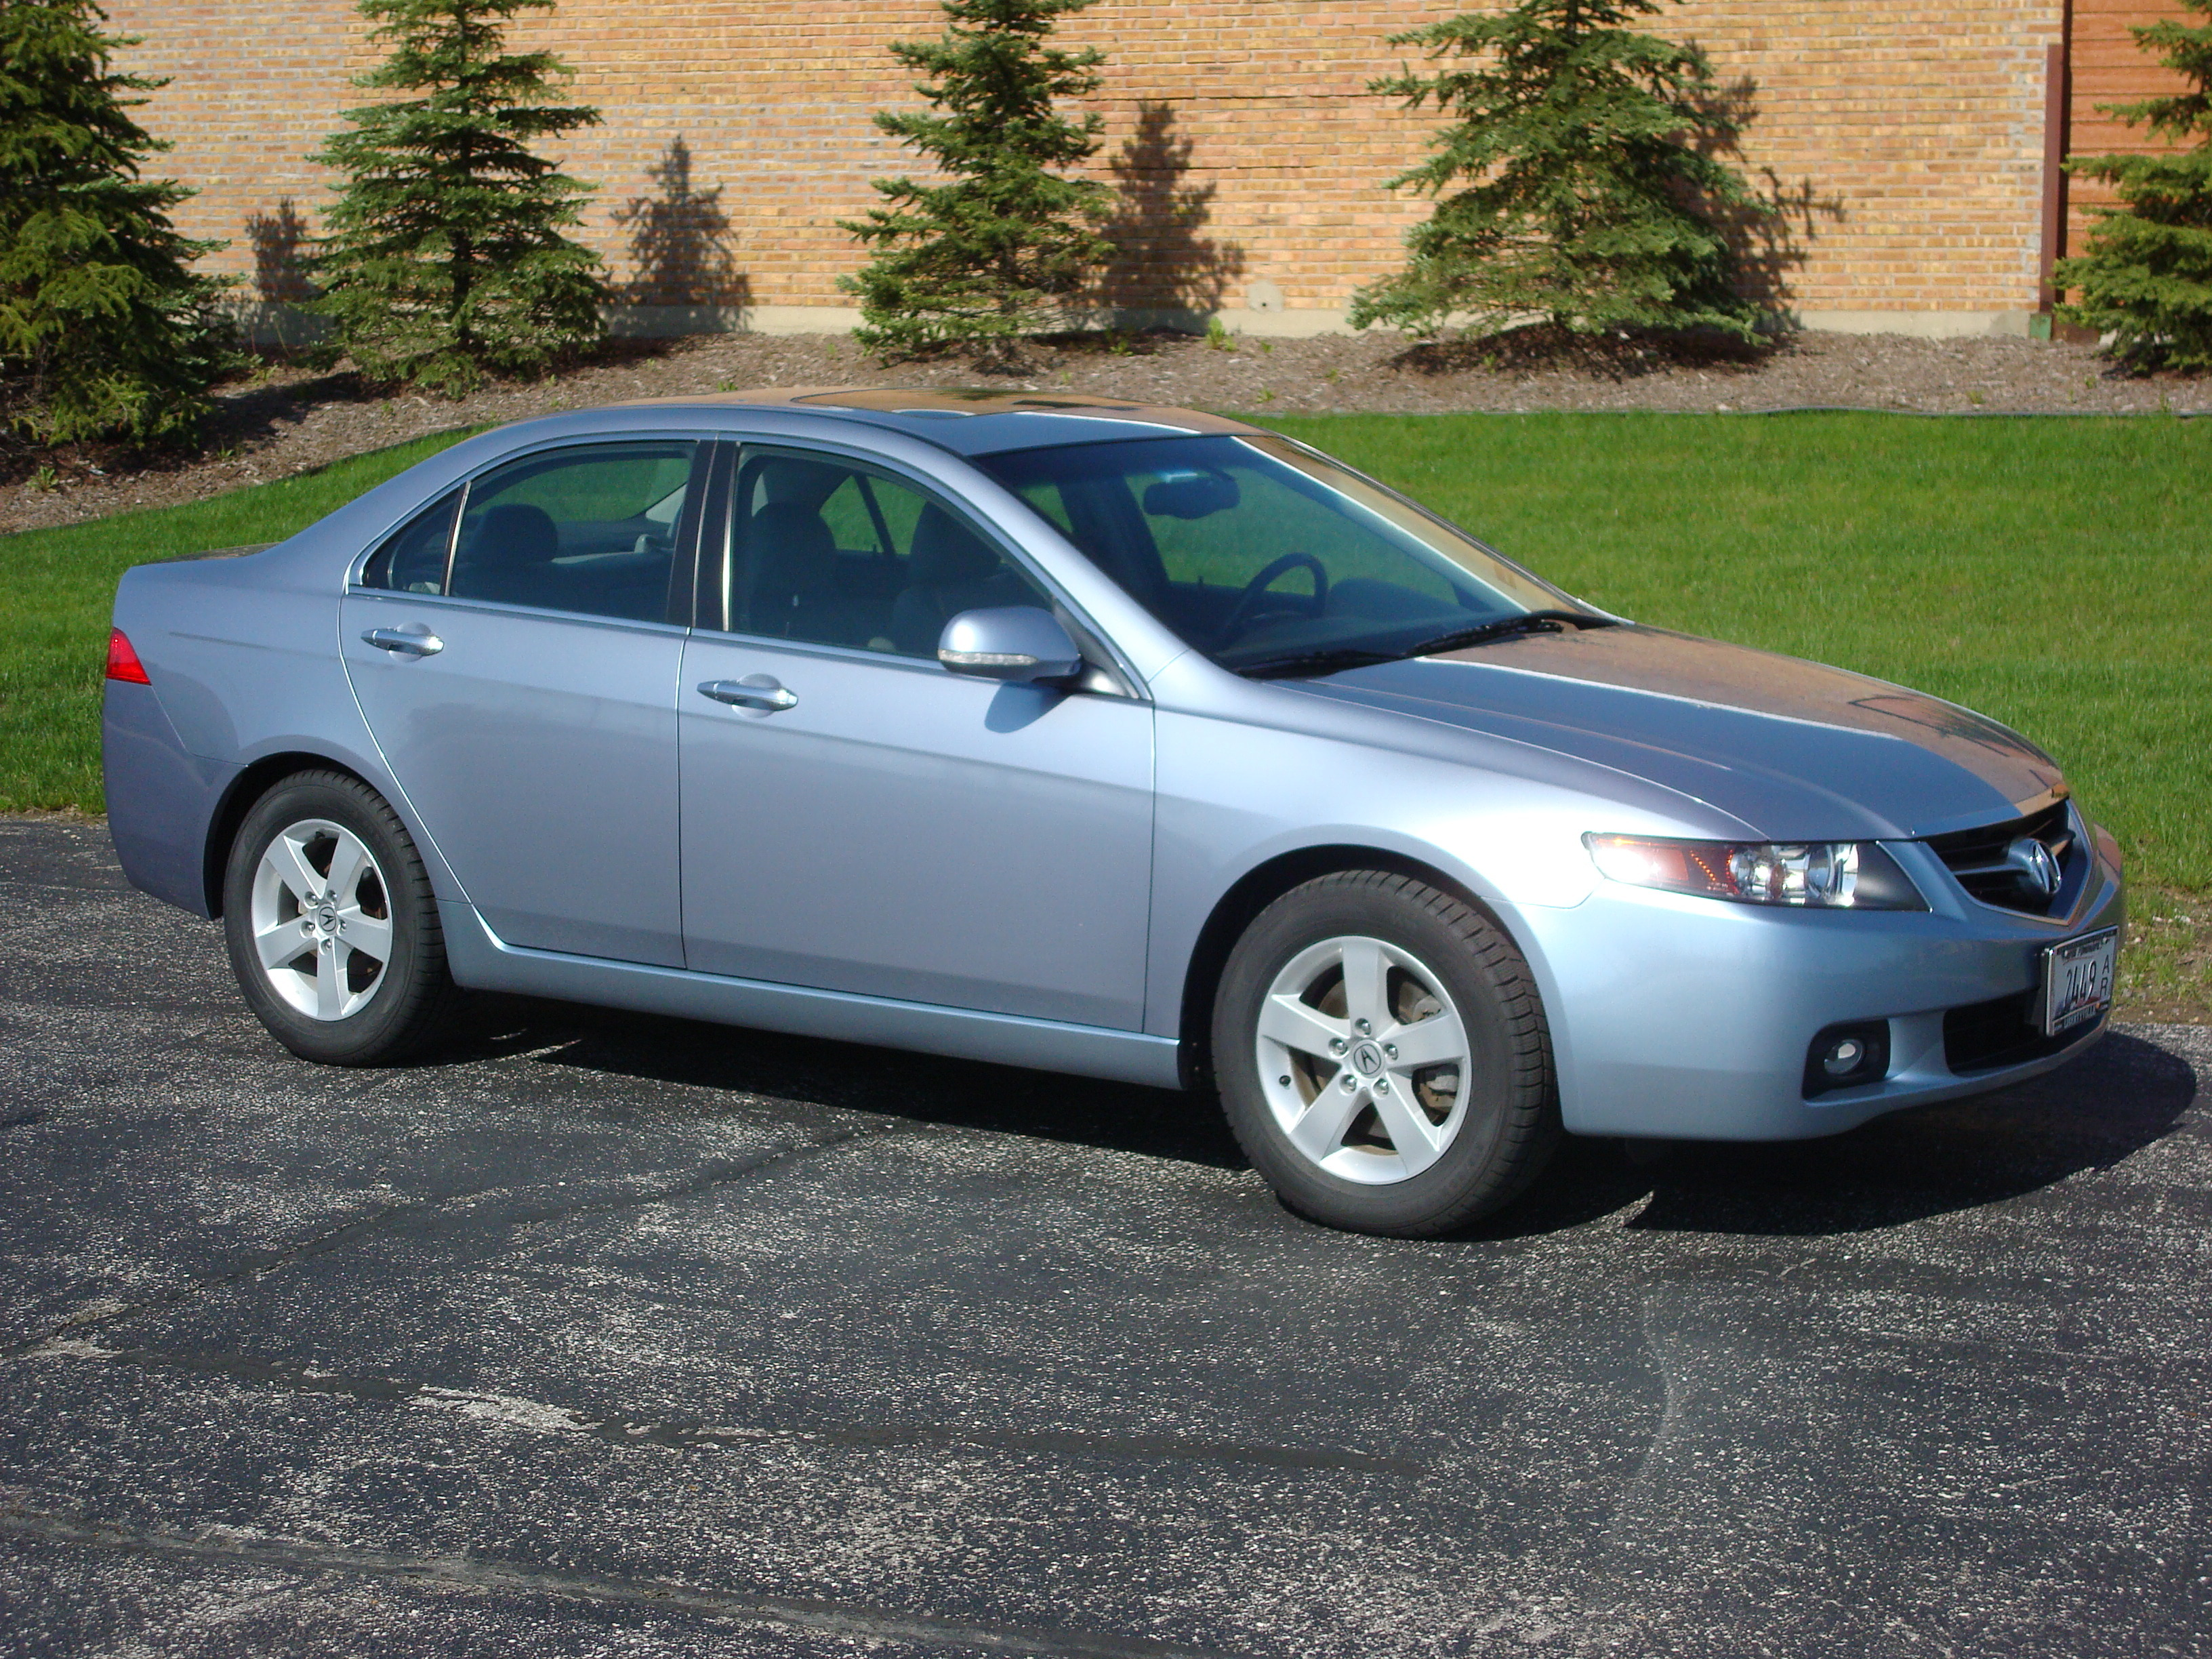 mtrakos 39 s 2004 acura tsx in north chicago il. Black Bedroom Furniture Sets. Home Design Ideas